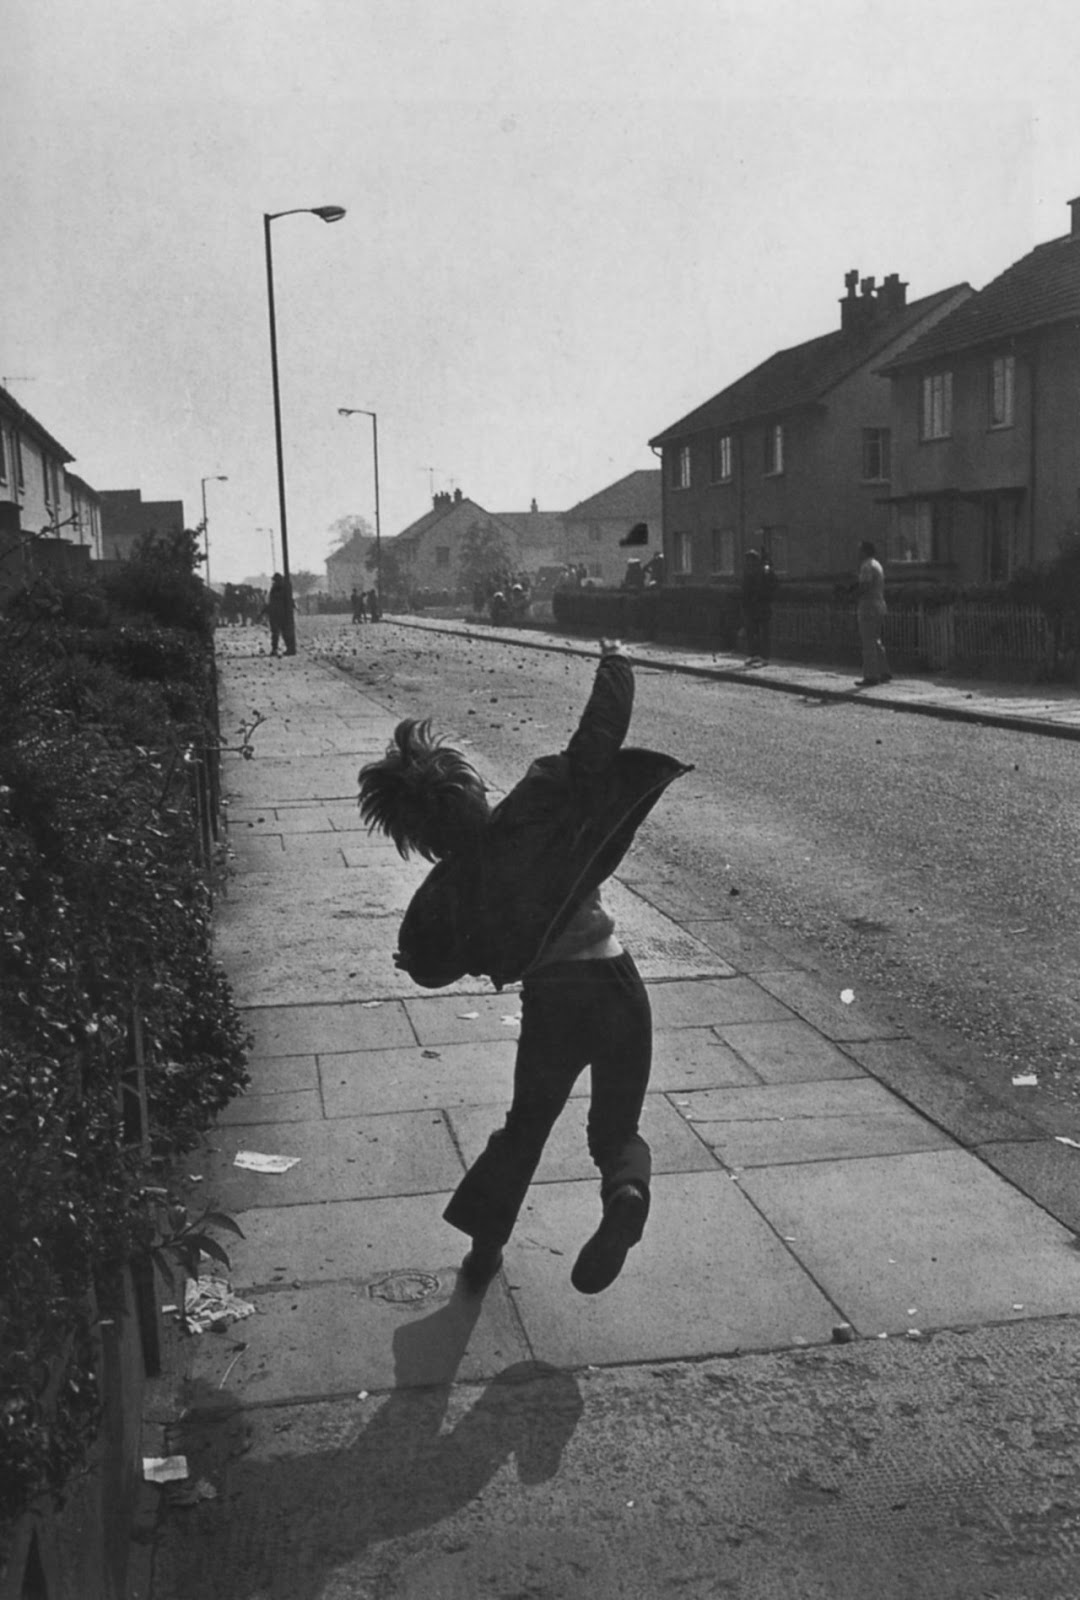 The troubles in northern ireland